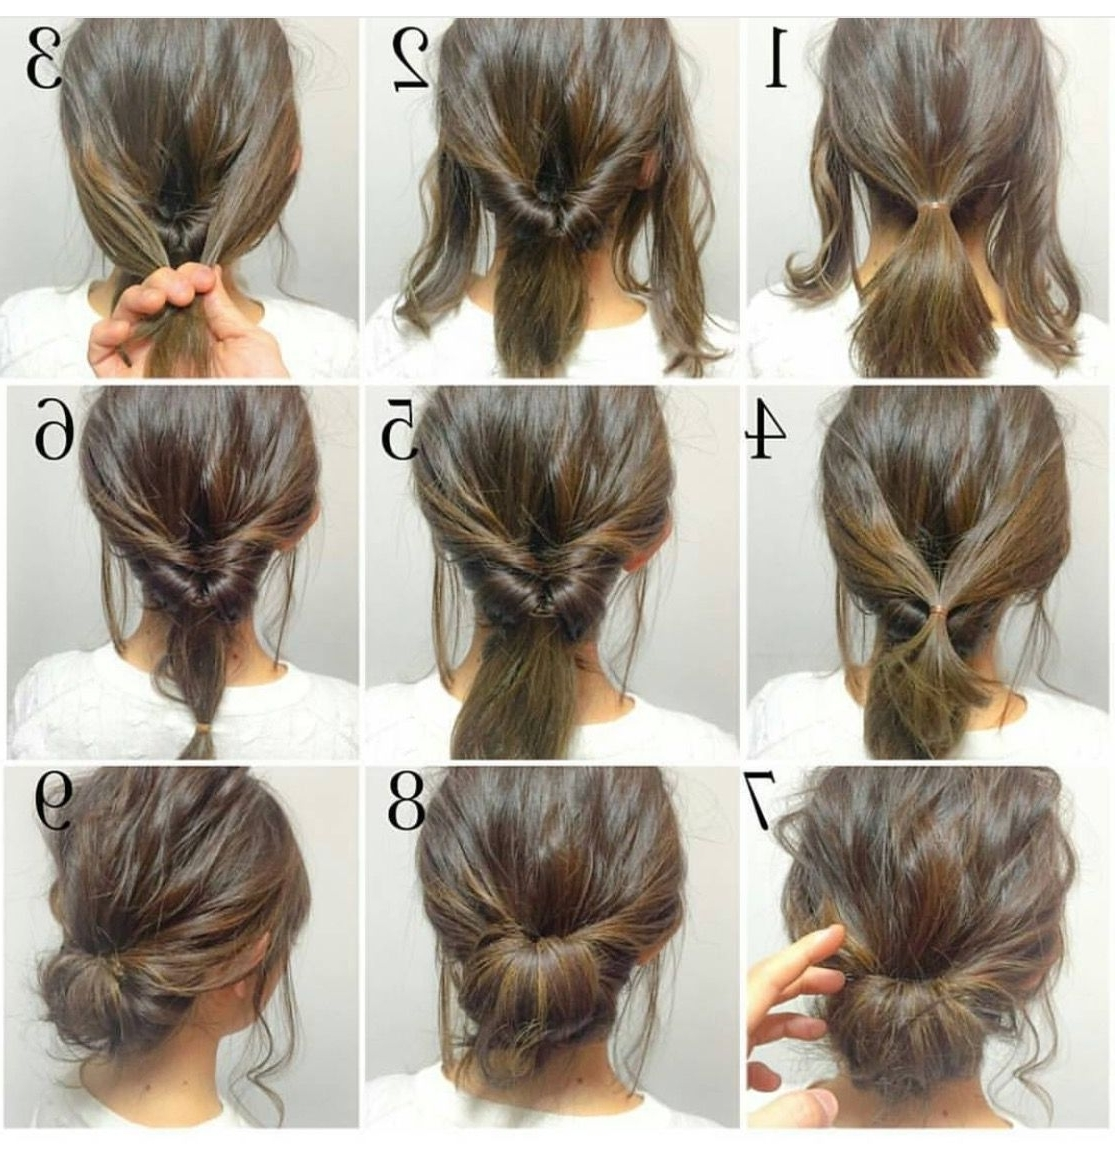 Easy, Hope This Works Out Quick Morning Hair! | • H A I R For Cute Updo Hairstyles For Medium Hair (Gallery 5 of 15)